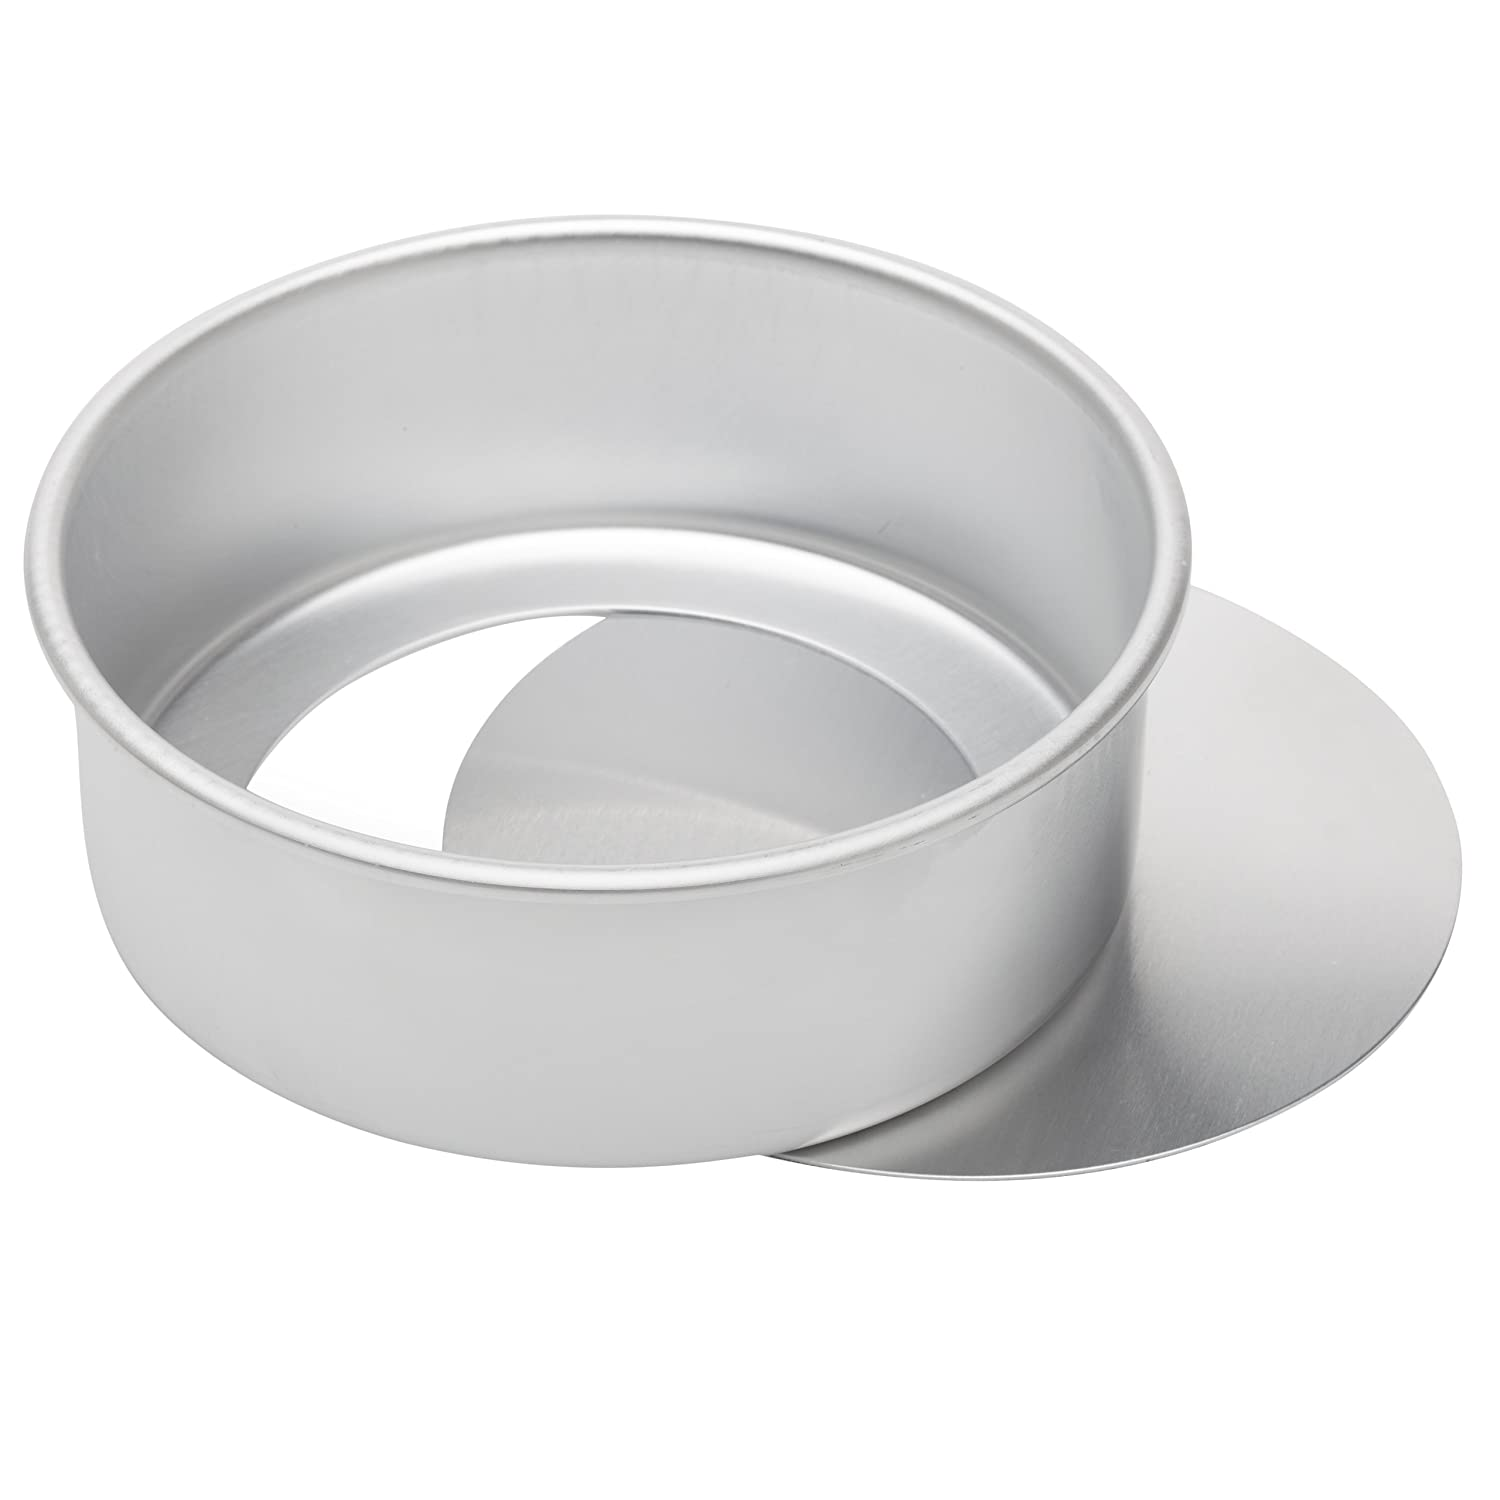 Ateco Aluminum Cake Pan with Removable Bottom, Round, 6- by 3-Inch 12063